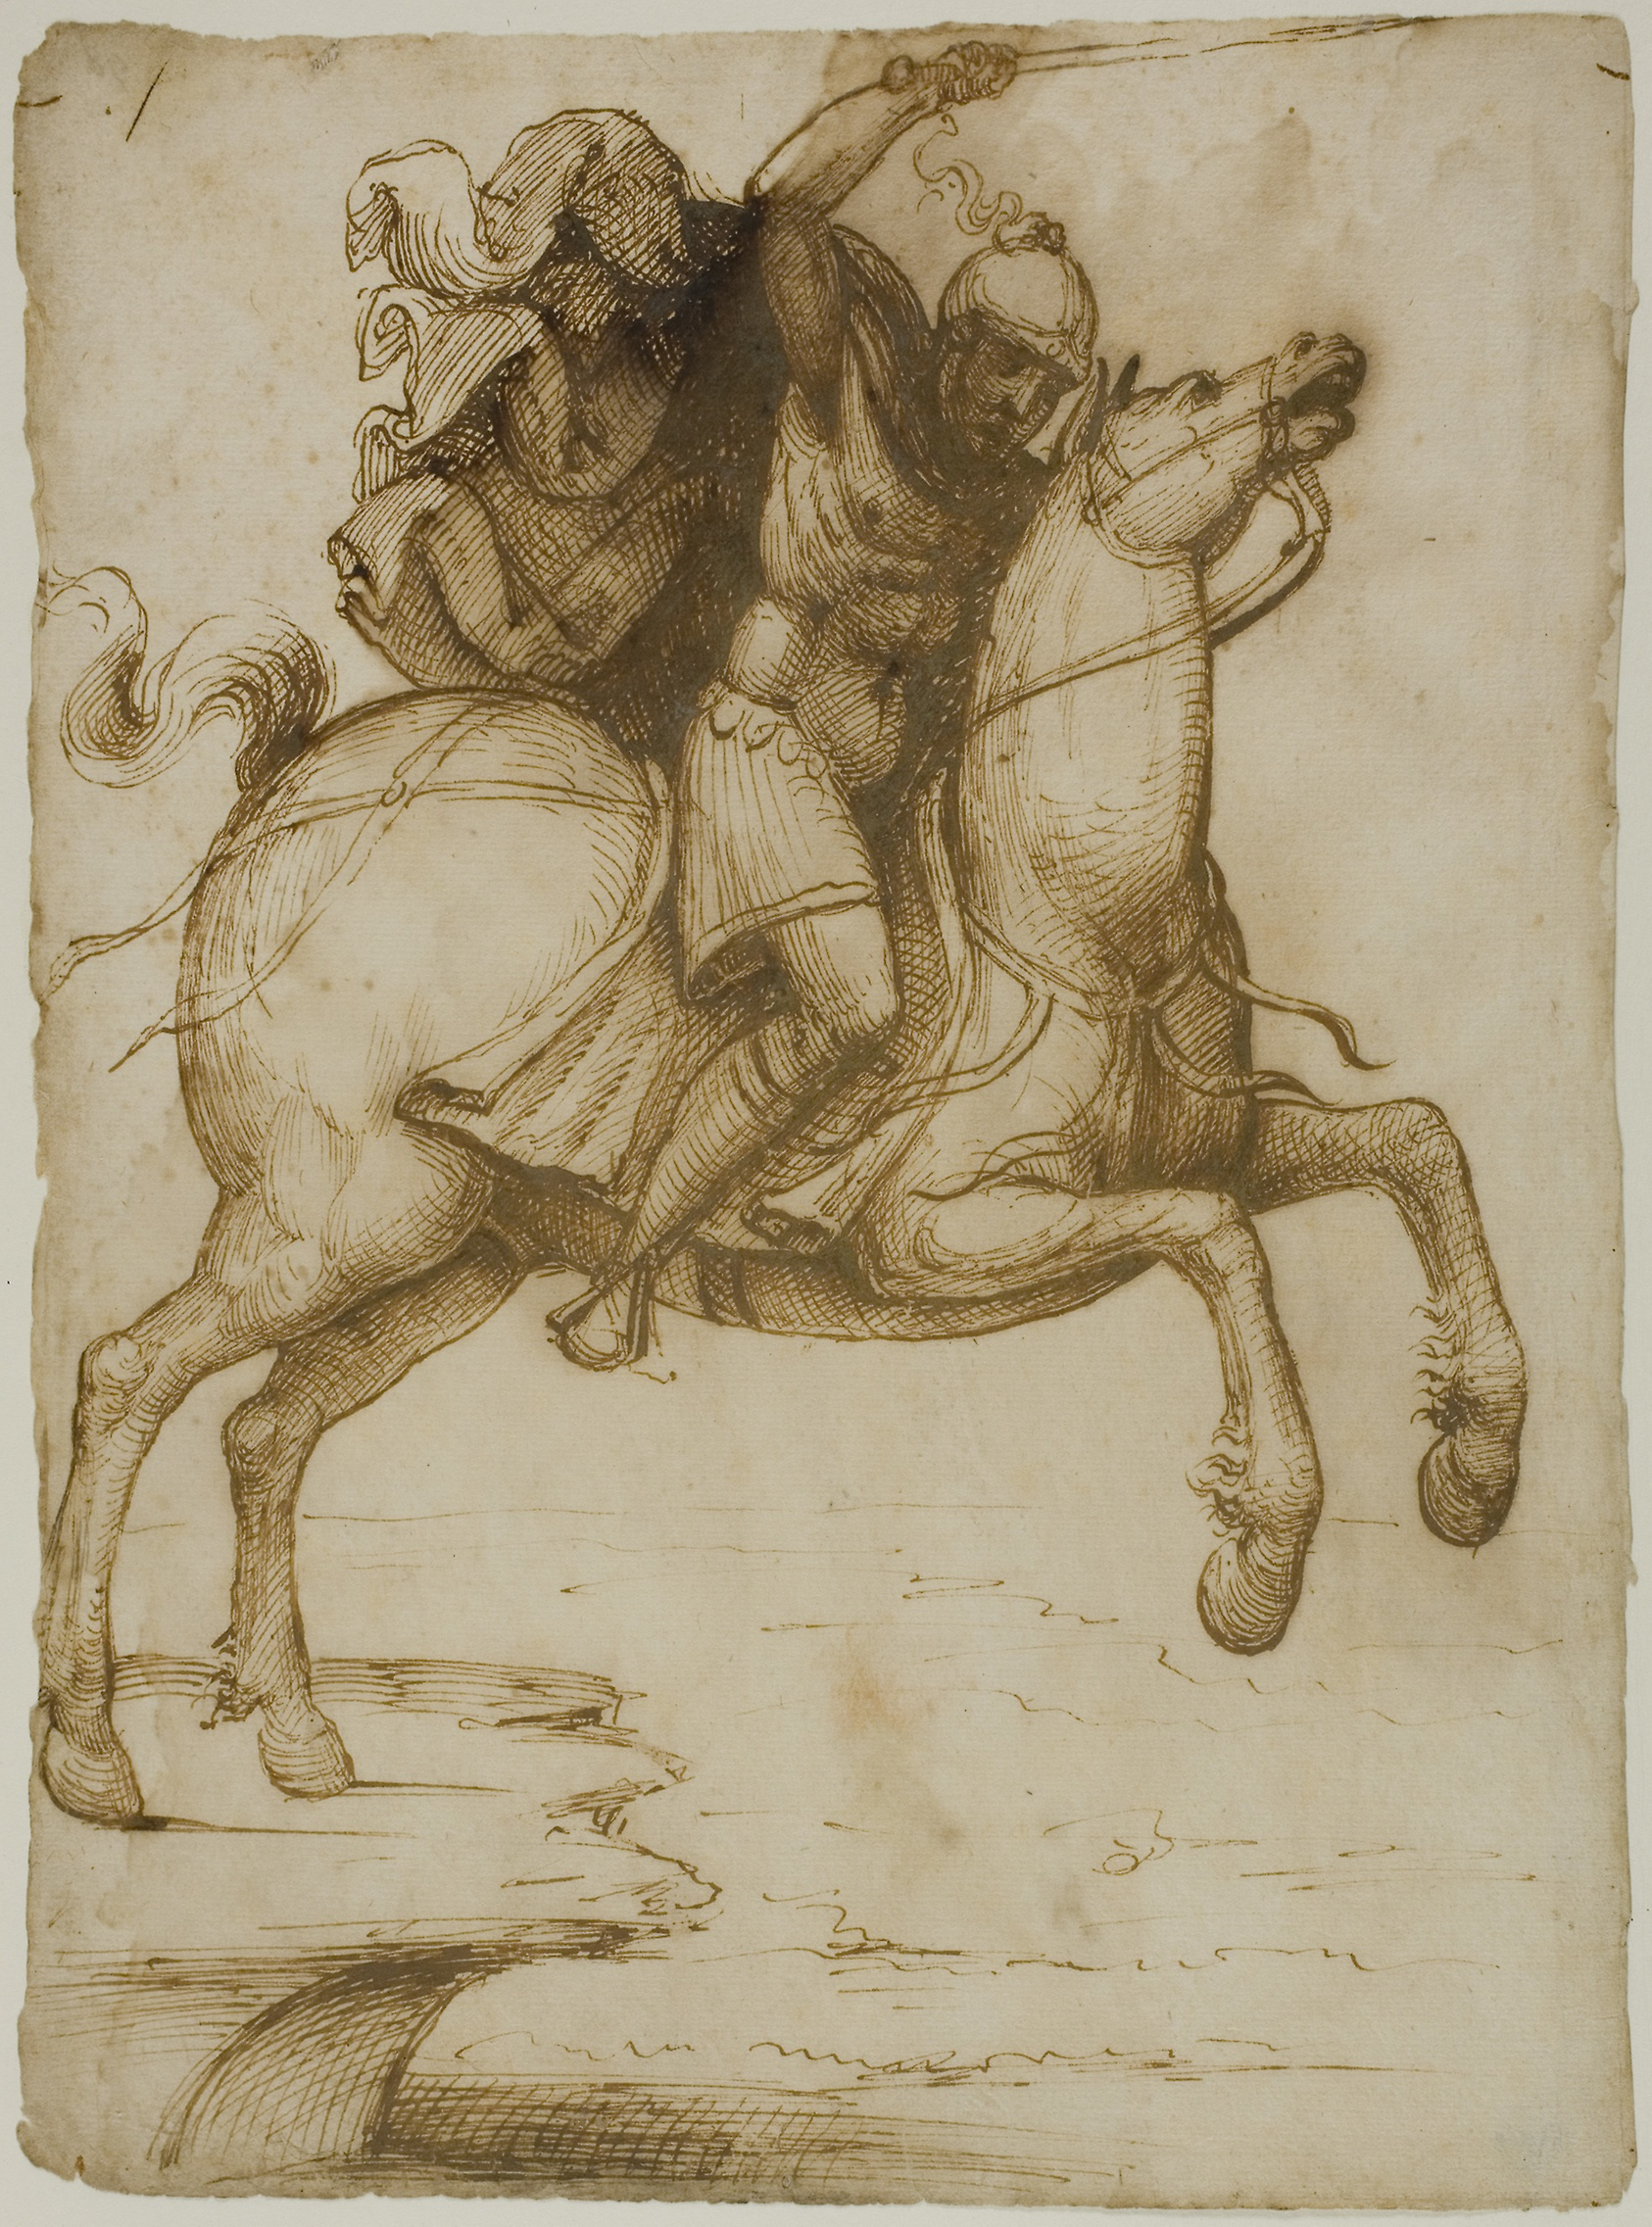 COMPARANDUM: Marcus Curtius Leaping into the Abyss, cr. 1530, Pseudo-Pacchia, Siena